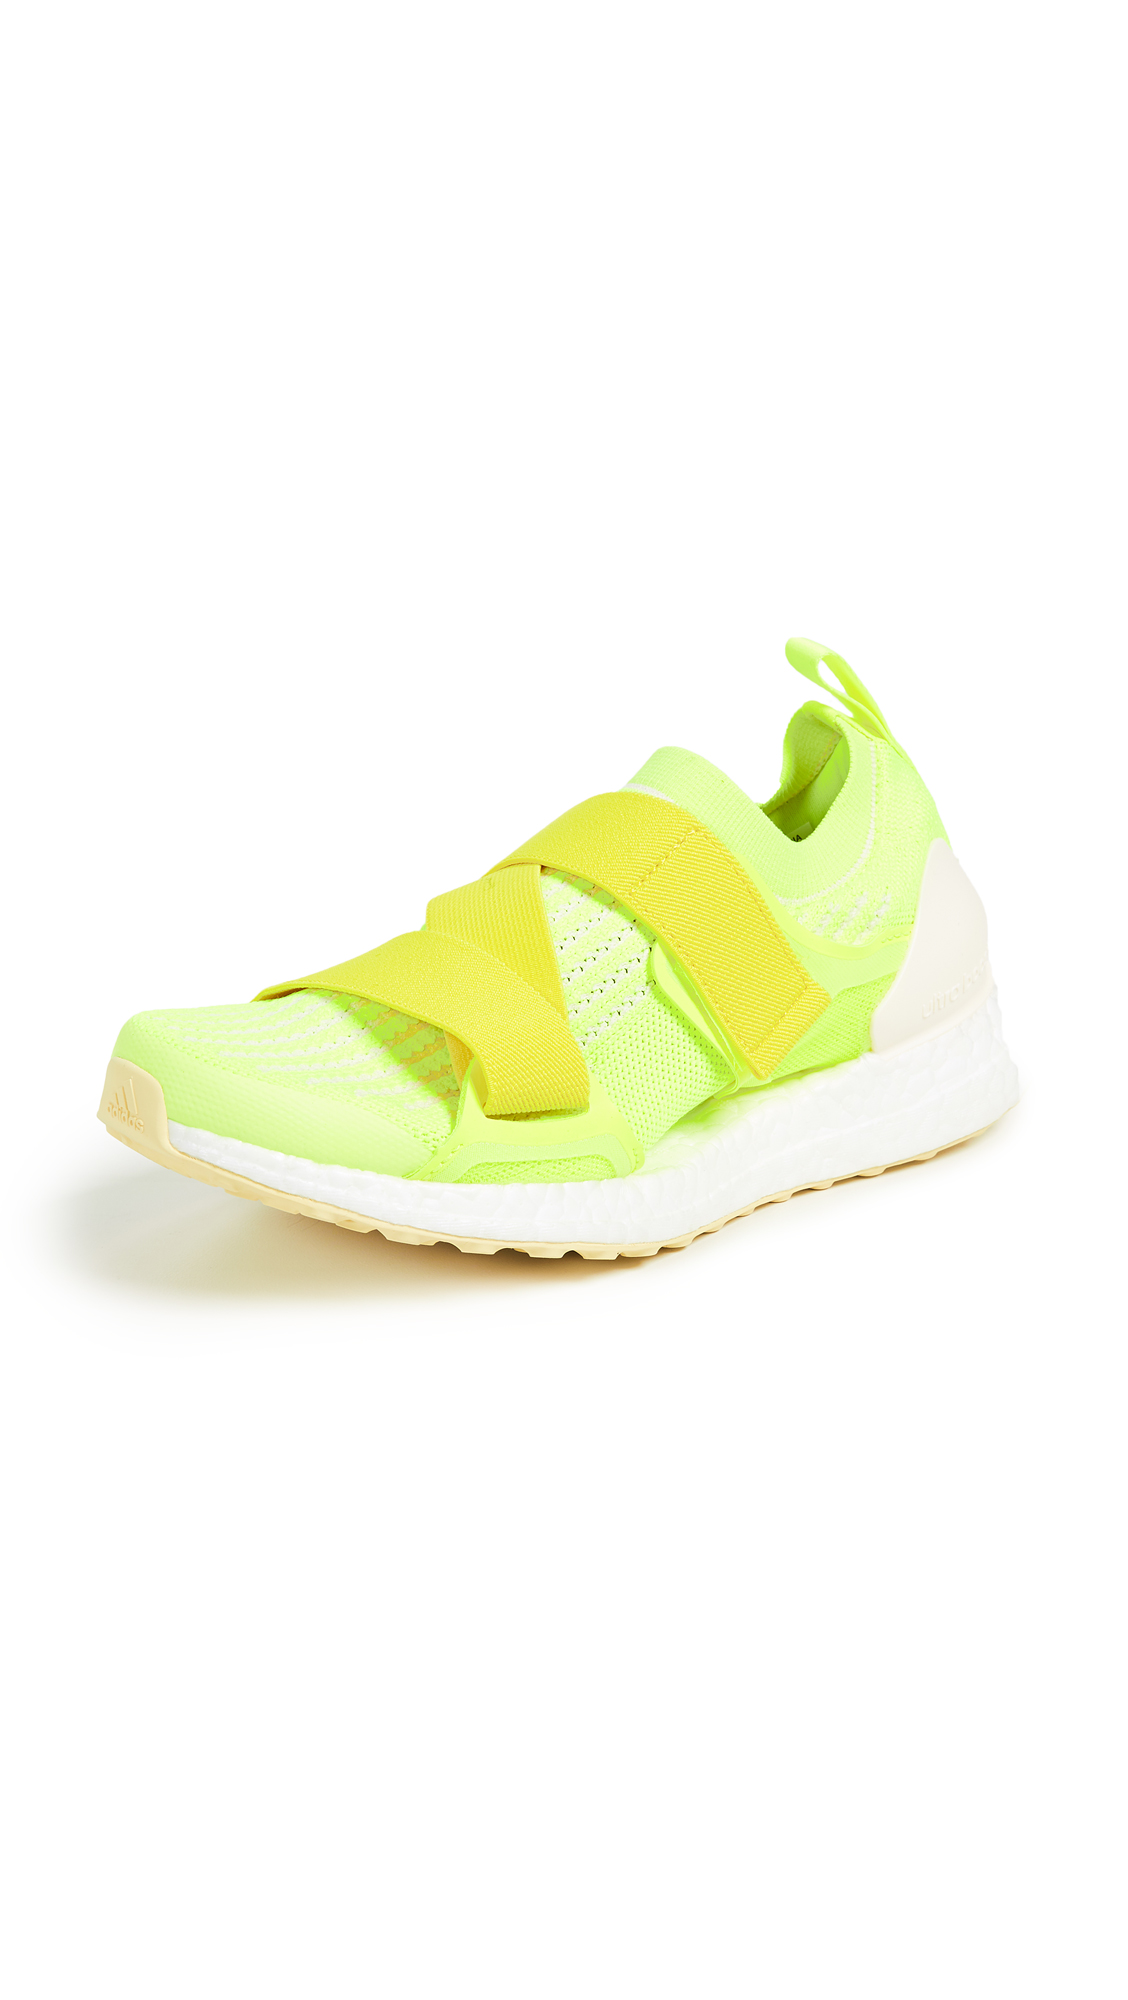 adidas by Stella McCartney UltraBOOST X Sneakers - Solar Yellow/Yellow/Mist Sun